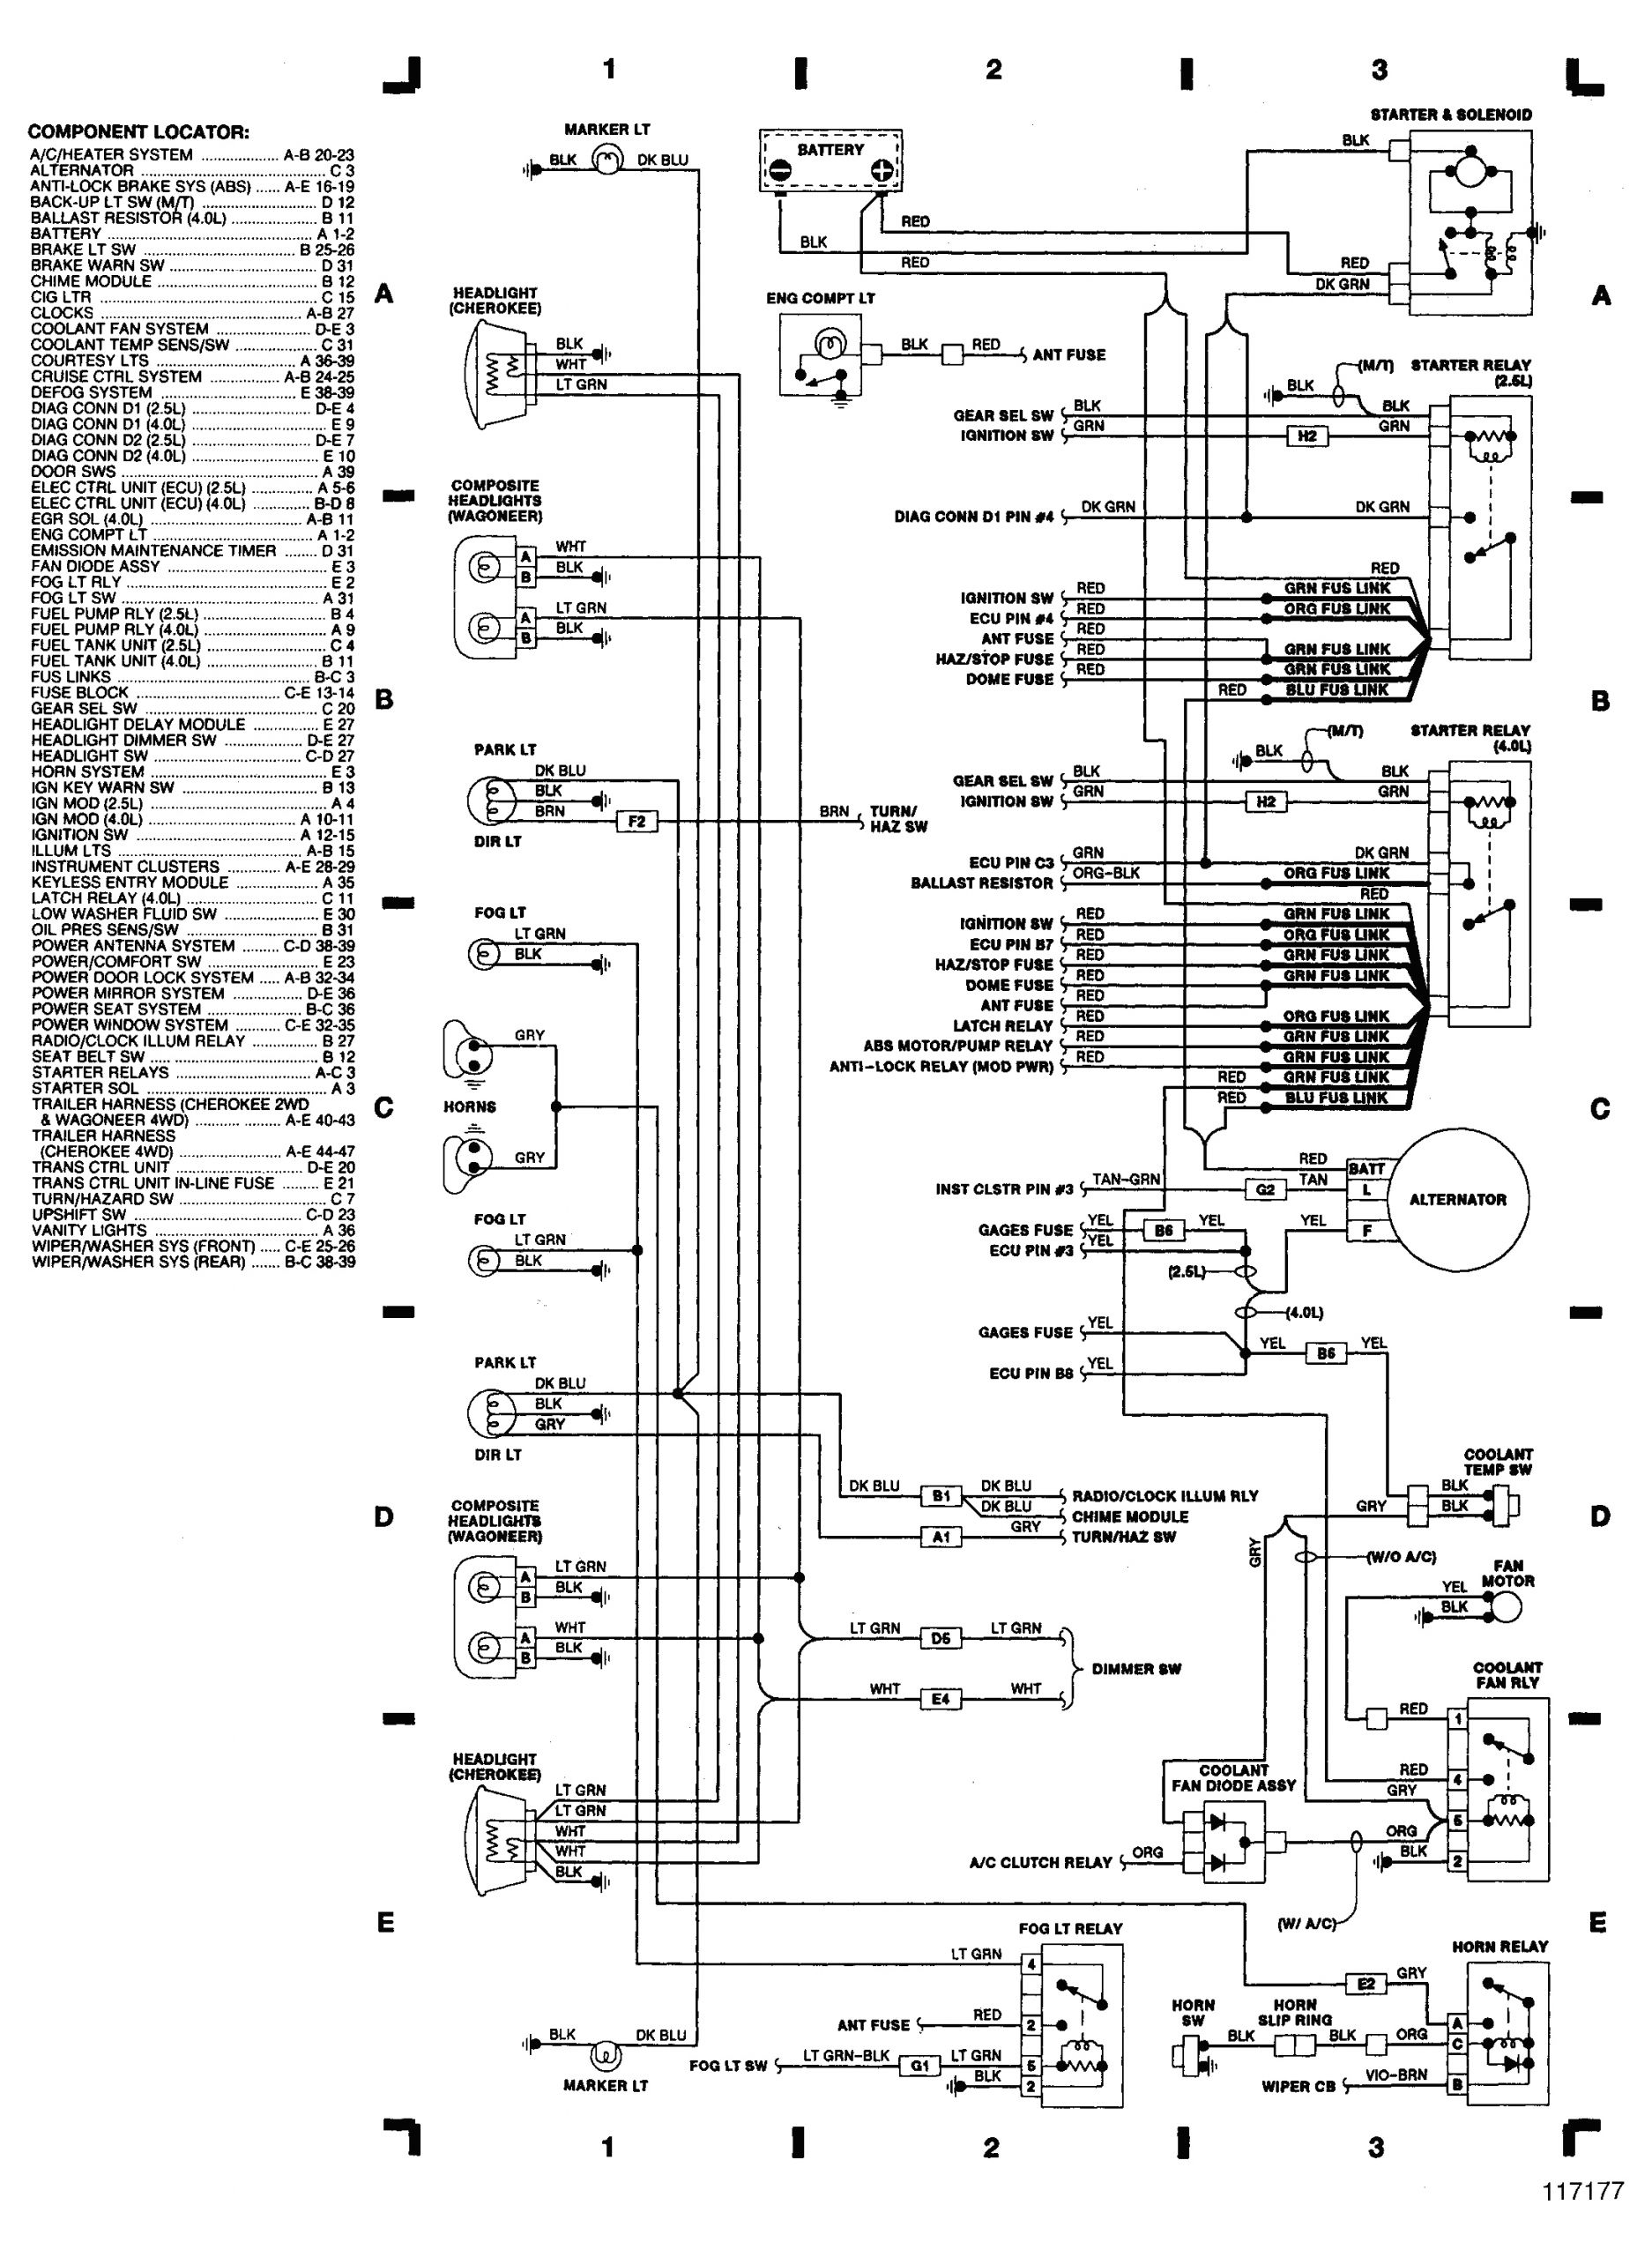 jeep cherokee wiring diagram 1993 rv wiring 2000 jeep wiring diagram operations of jeep cherokee wiring diagram 1993 jpg